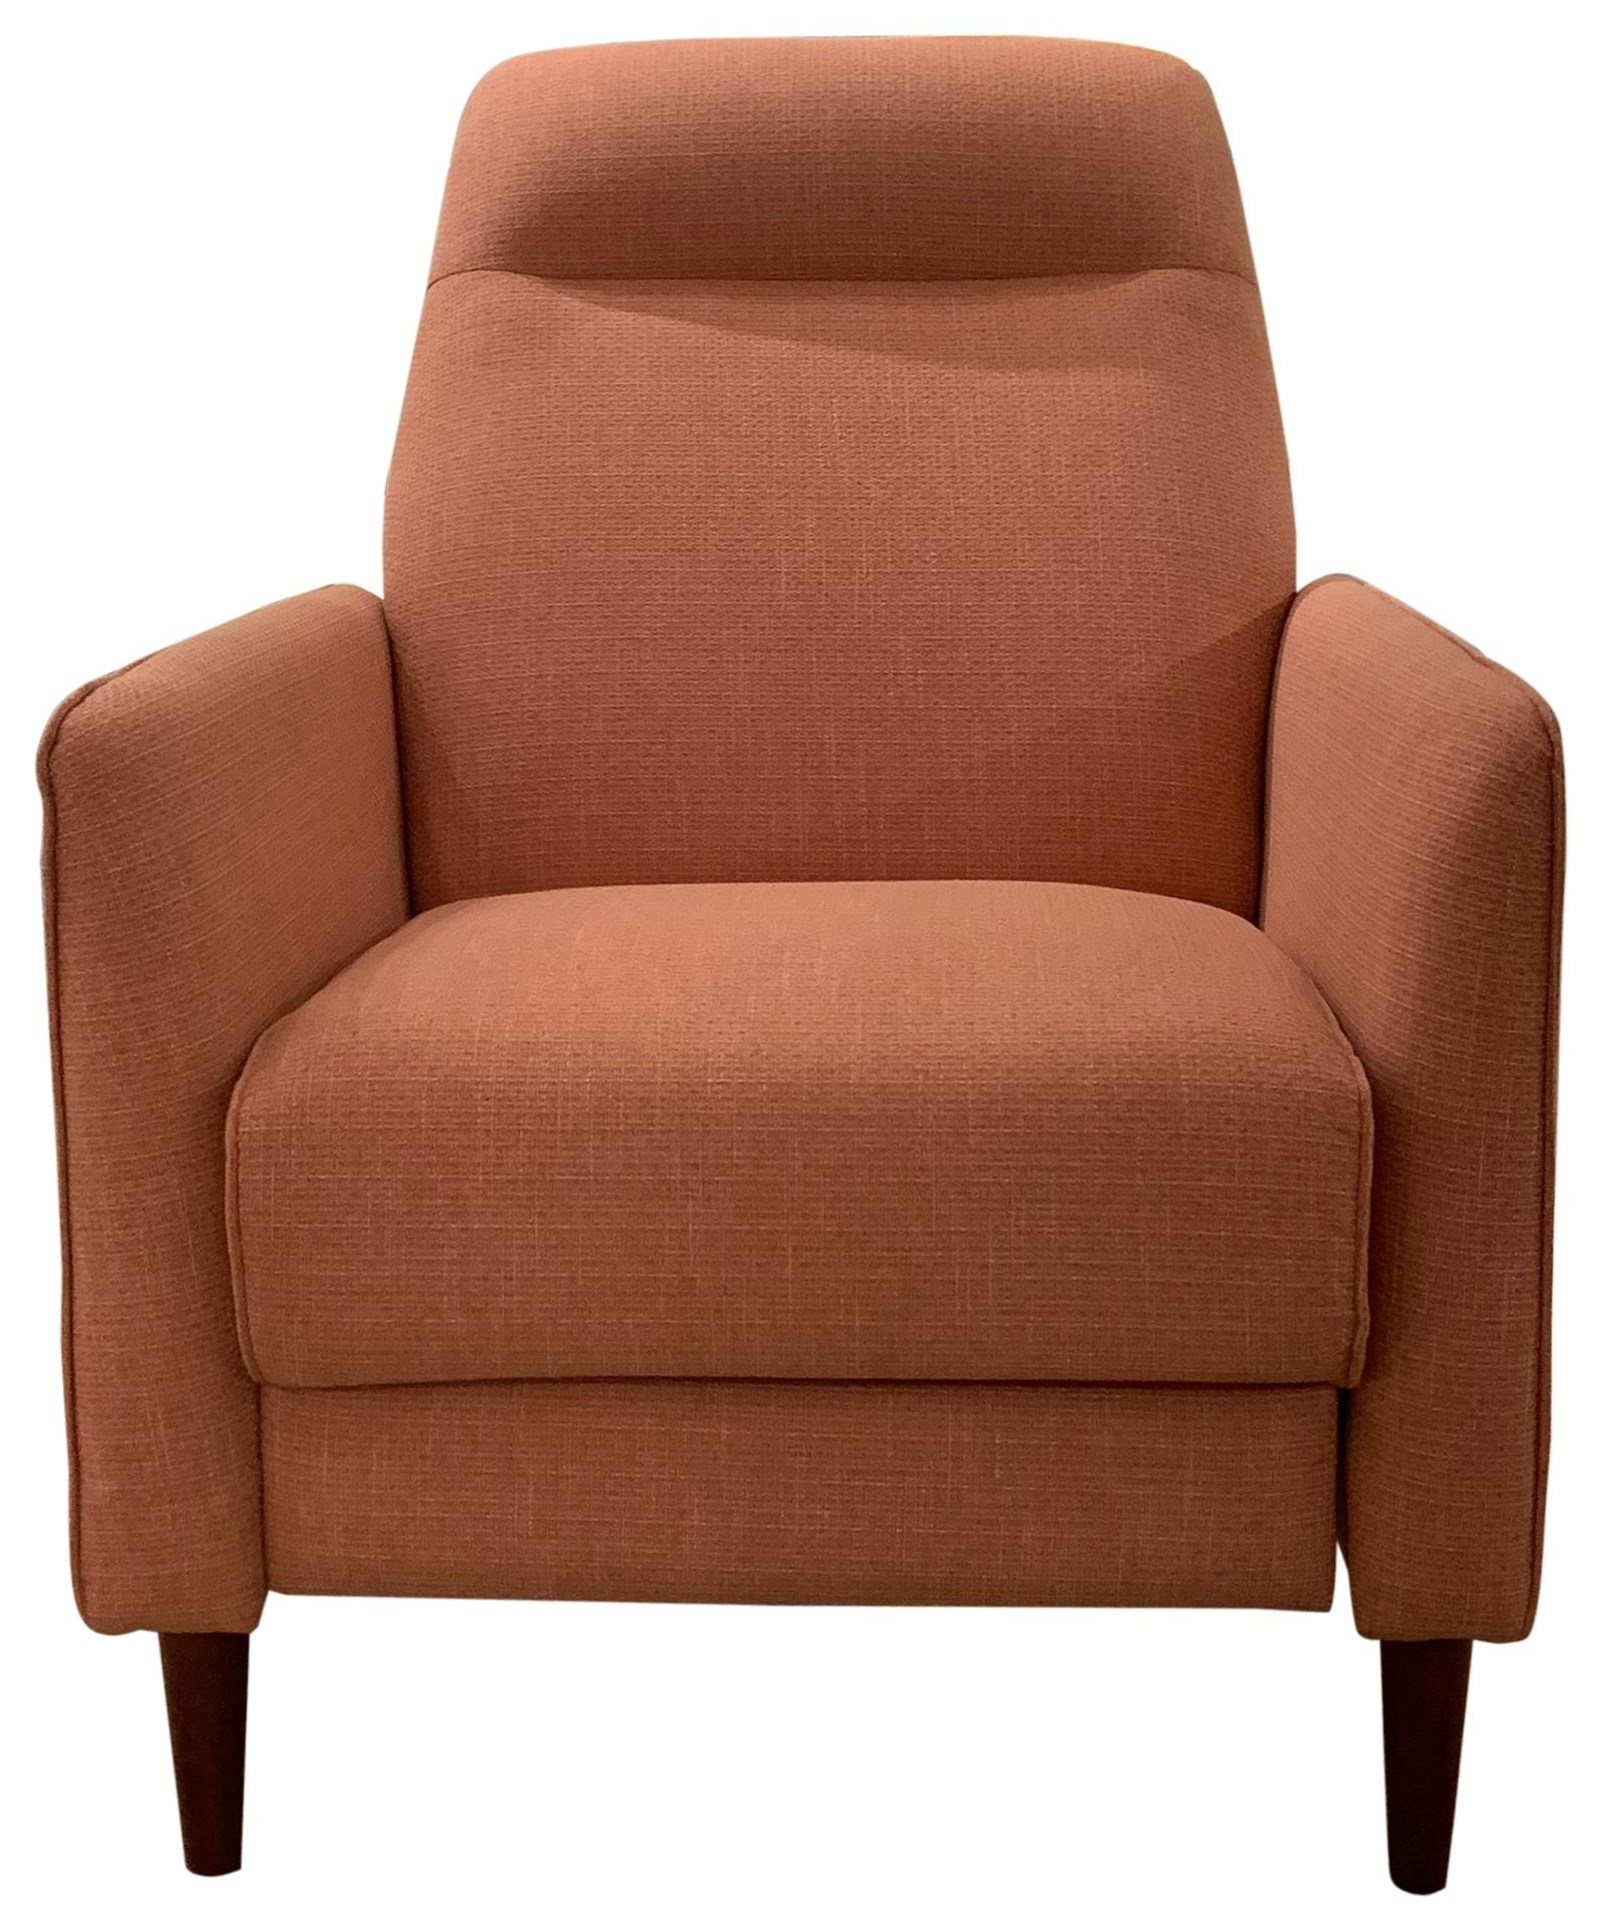 Hamms Pushback Recliner by Urban Chic at Red Knot